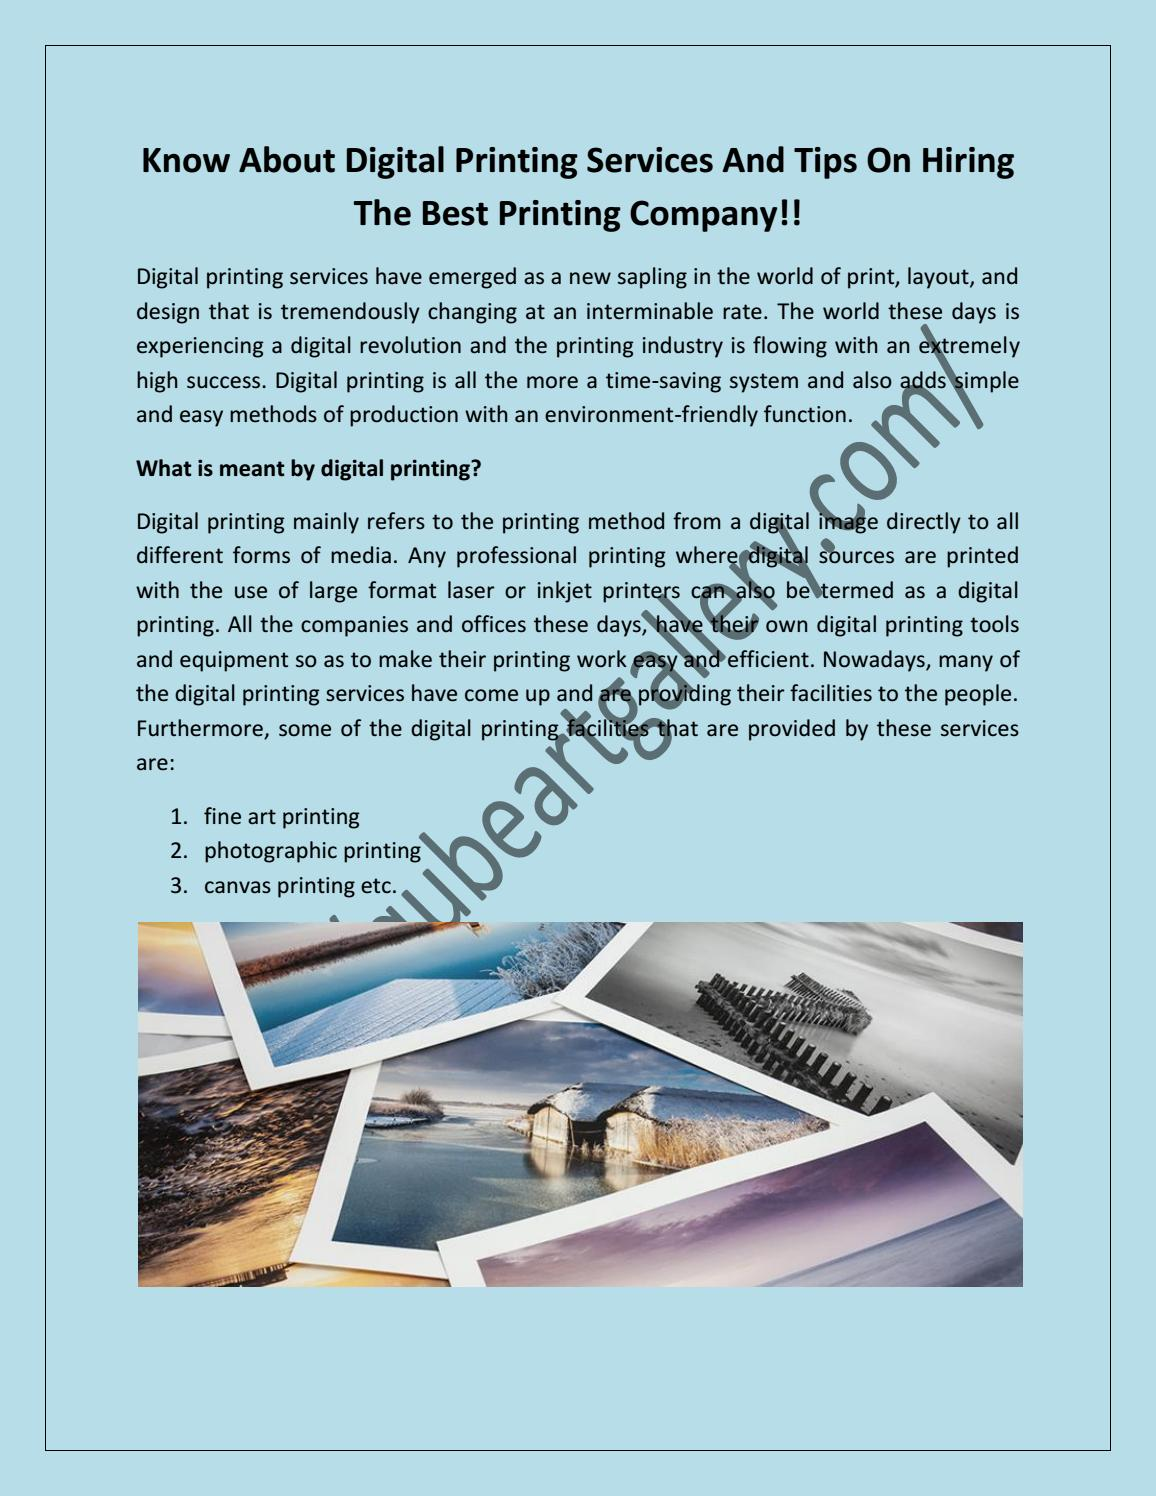 How to Hire Digital Printing Services in Dubai UAE by Qube